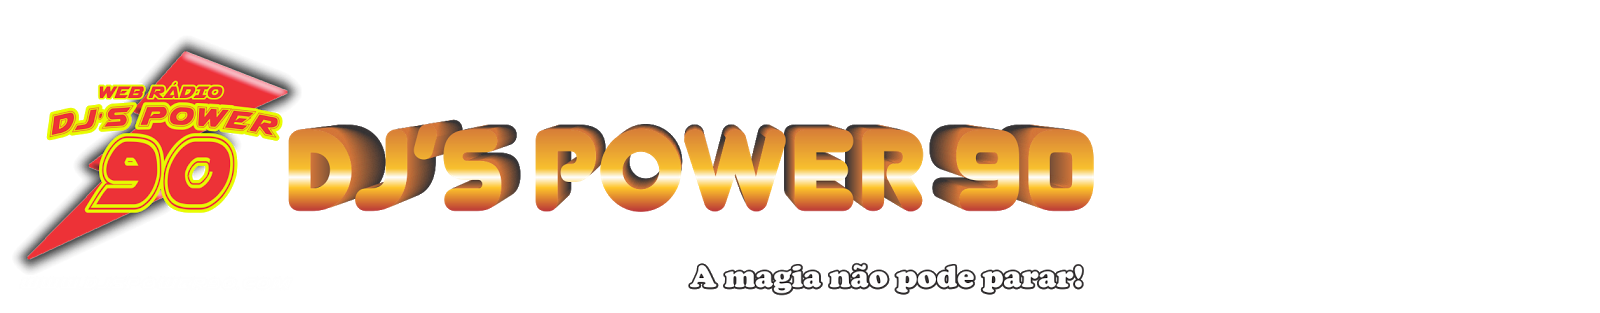 DJ'S POWER 90